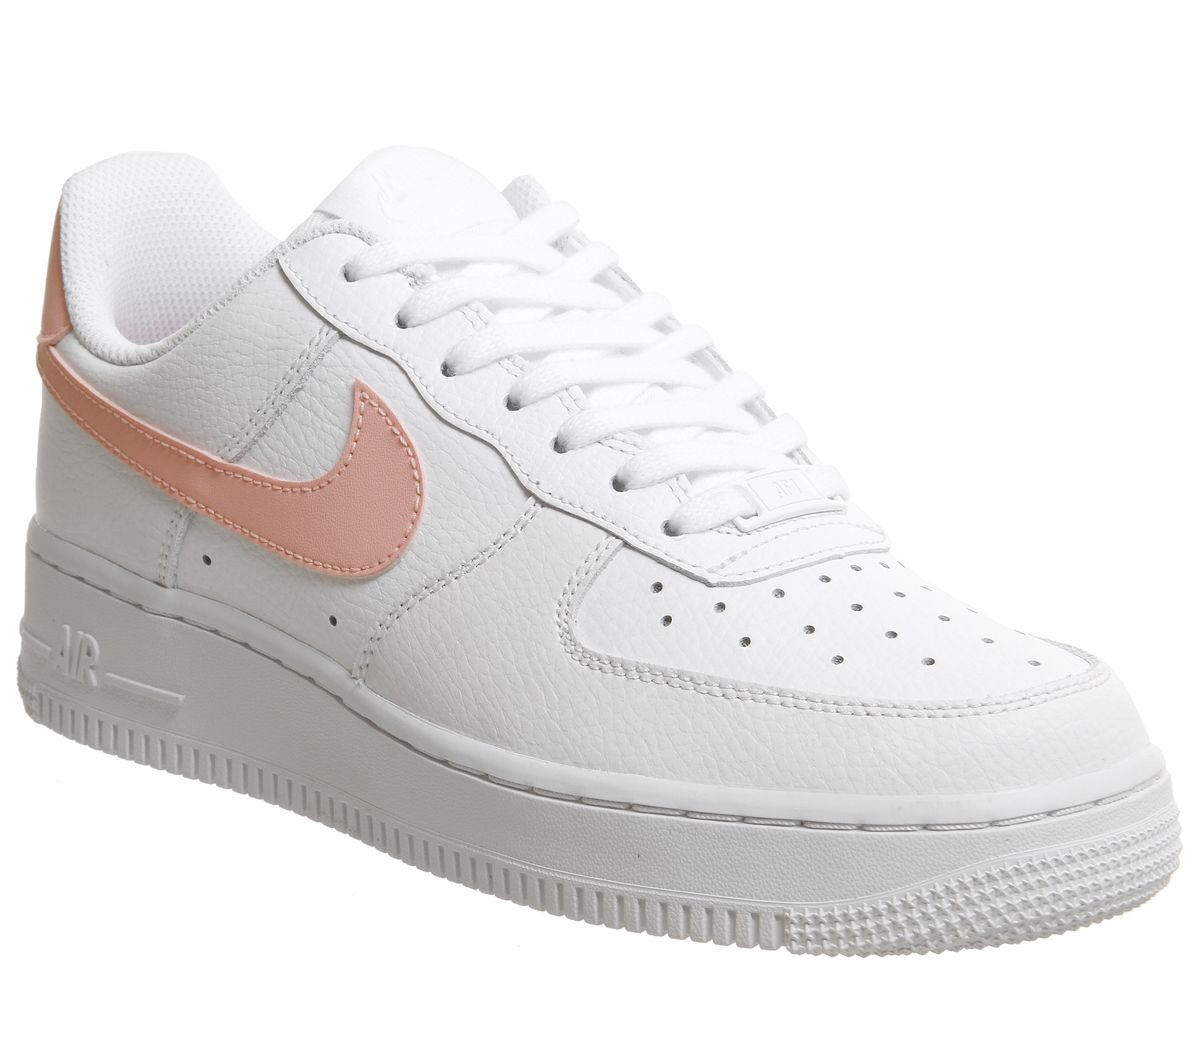 new style 2f6f6 66b6b Nike Air Force 1 07 Trainers White Oracle Pink White - Hers trainers